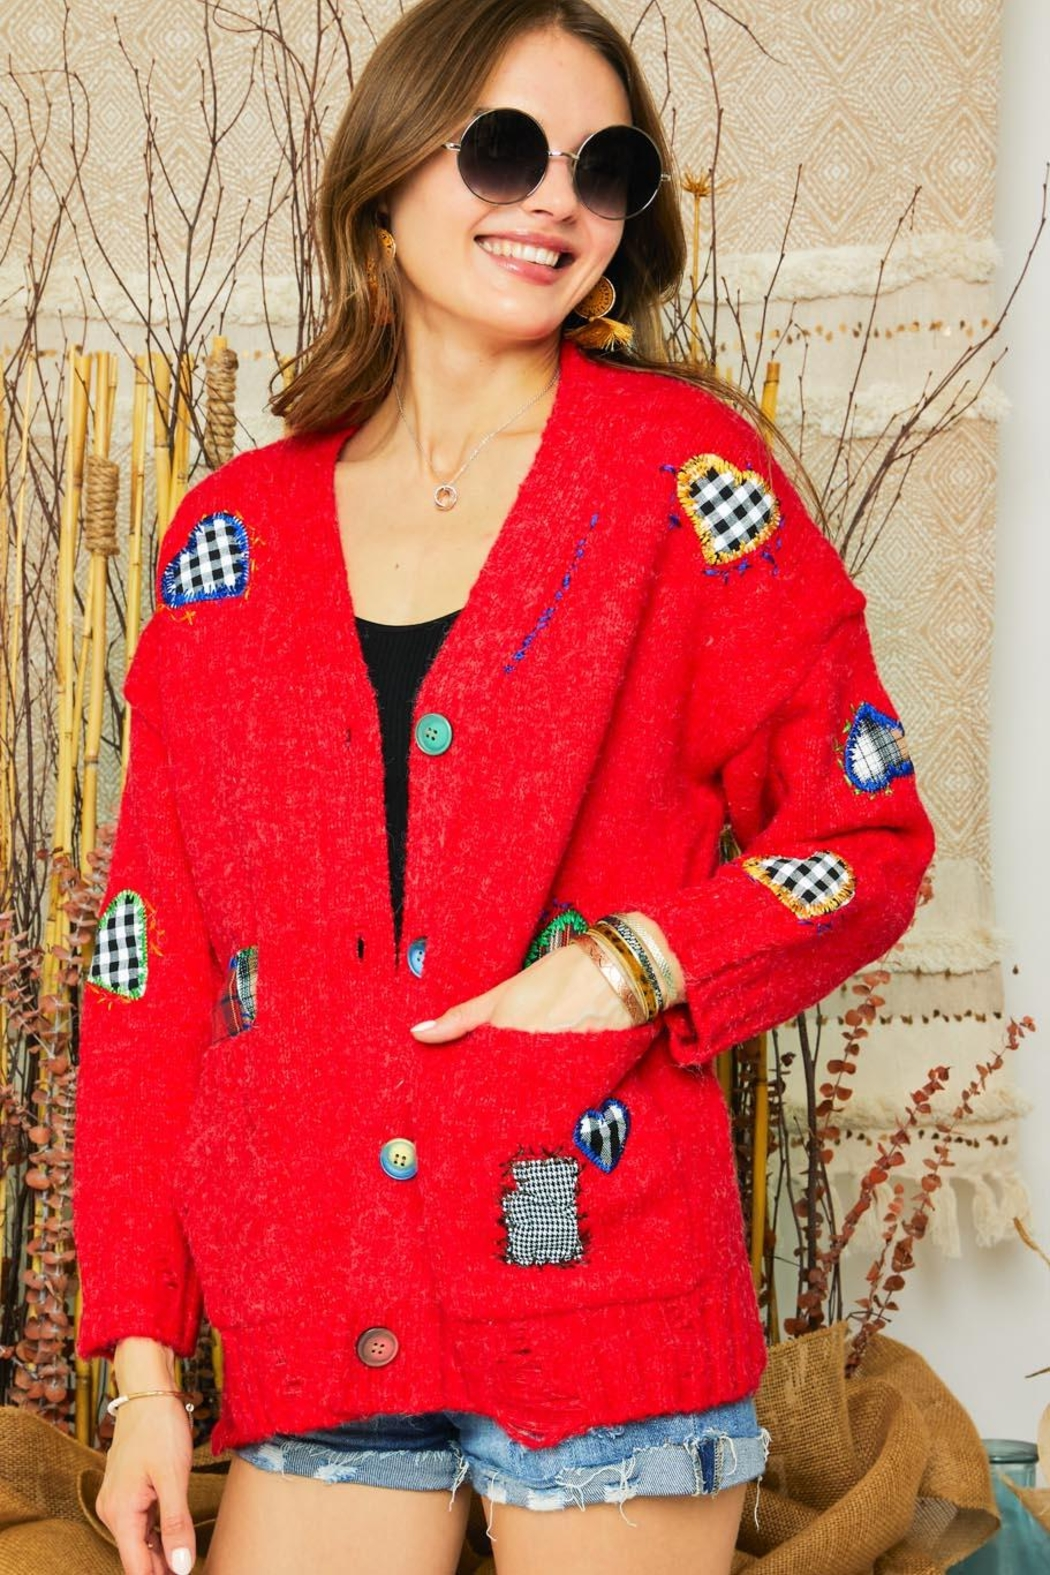 Adora Patchwork Embroidered Patch Multi Color Button Down Knit Sweater Cardigan - Front Full Image